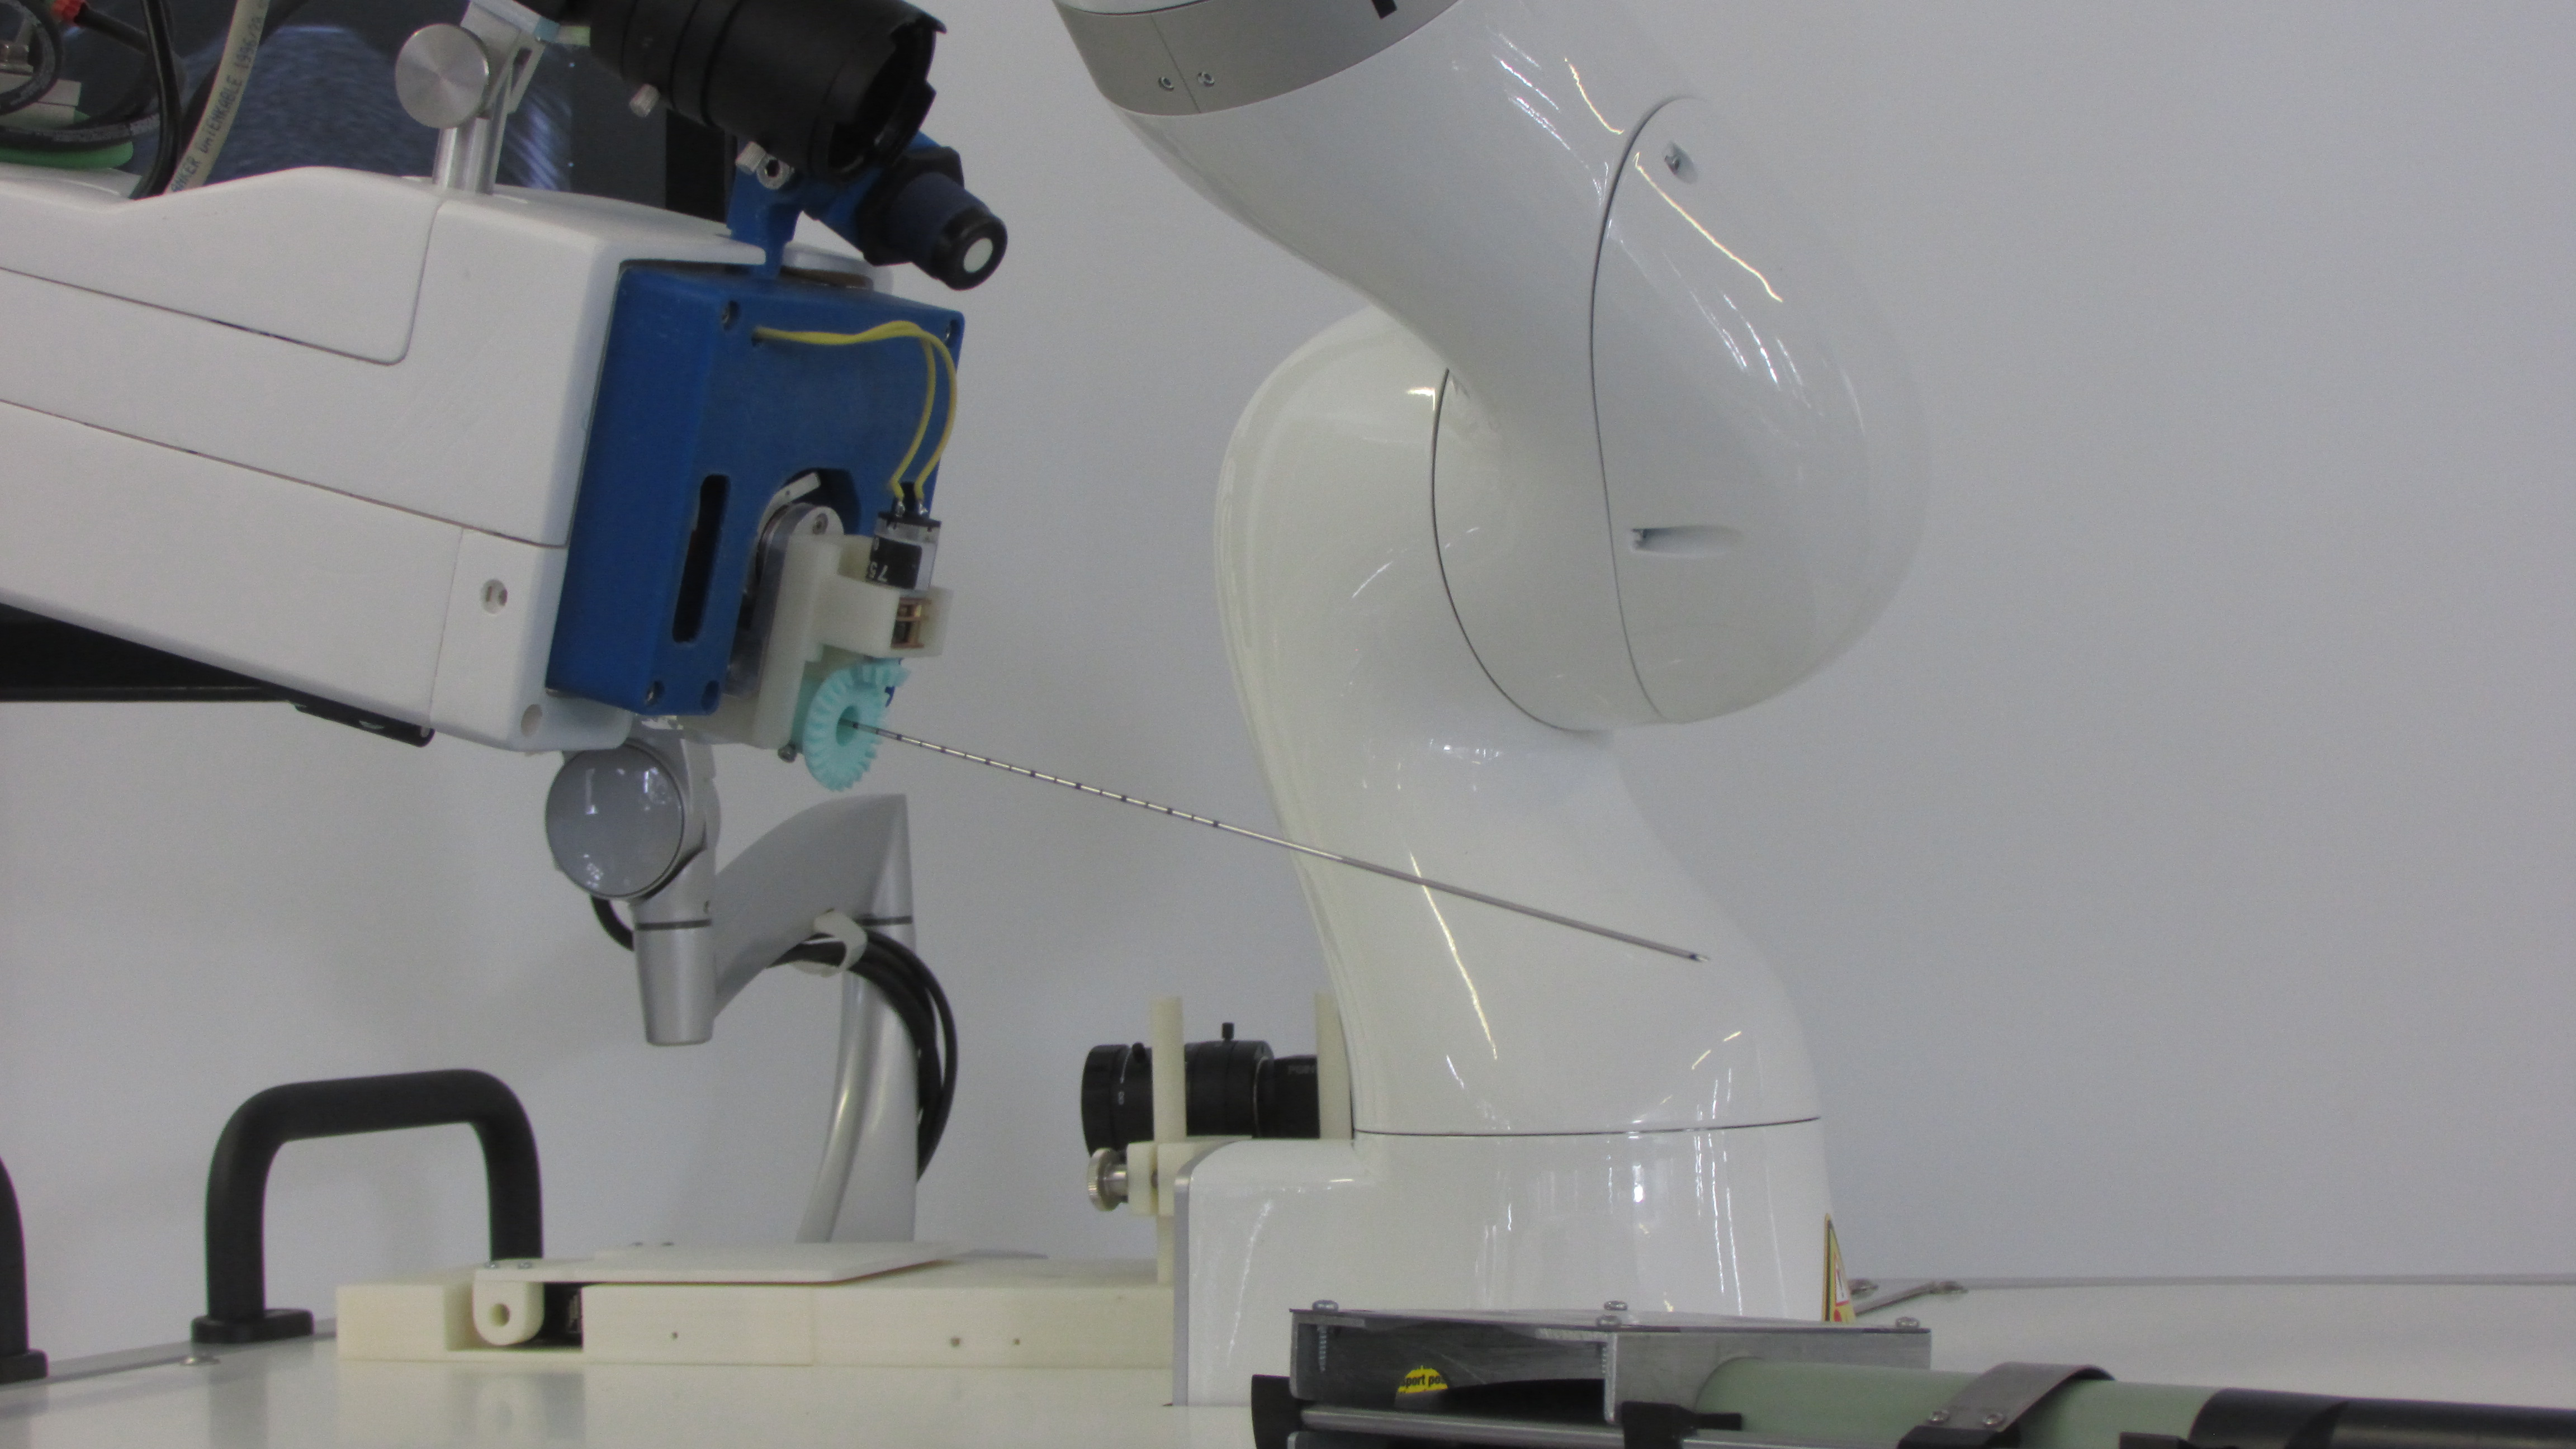 cancer diagnosis, cancer treatment, localized cancers, medical, robot prototype, new medical robot prototype, robot prototype, brachytherapy, brachy therapy, brachythérapie, brachytherapie, brachy therapie, brachithérapie, brachi thérapie, robot for biopsy, biopsy, biopsie, prototype biopsie, interreg 2 seas, interreg2seas, interreg 2seas, interreg 2seas project, cross-border partnership, cross border partnership, enhance patient quality of life, patient quality of life, reduce cancer mortality, cancer mortality, prostate, prostate cancer, soft tissues cancer, technique better tolared by patients, technique tolared by patients,, radioisotopes, radio isotopes, ionizing radiation, cobra, cobra project